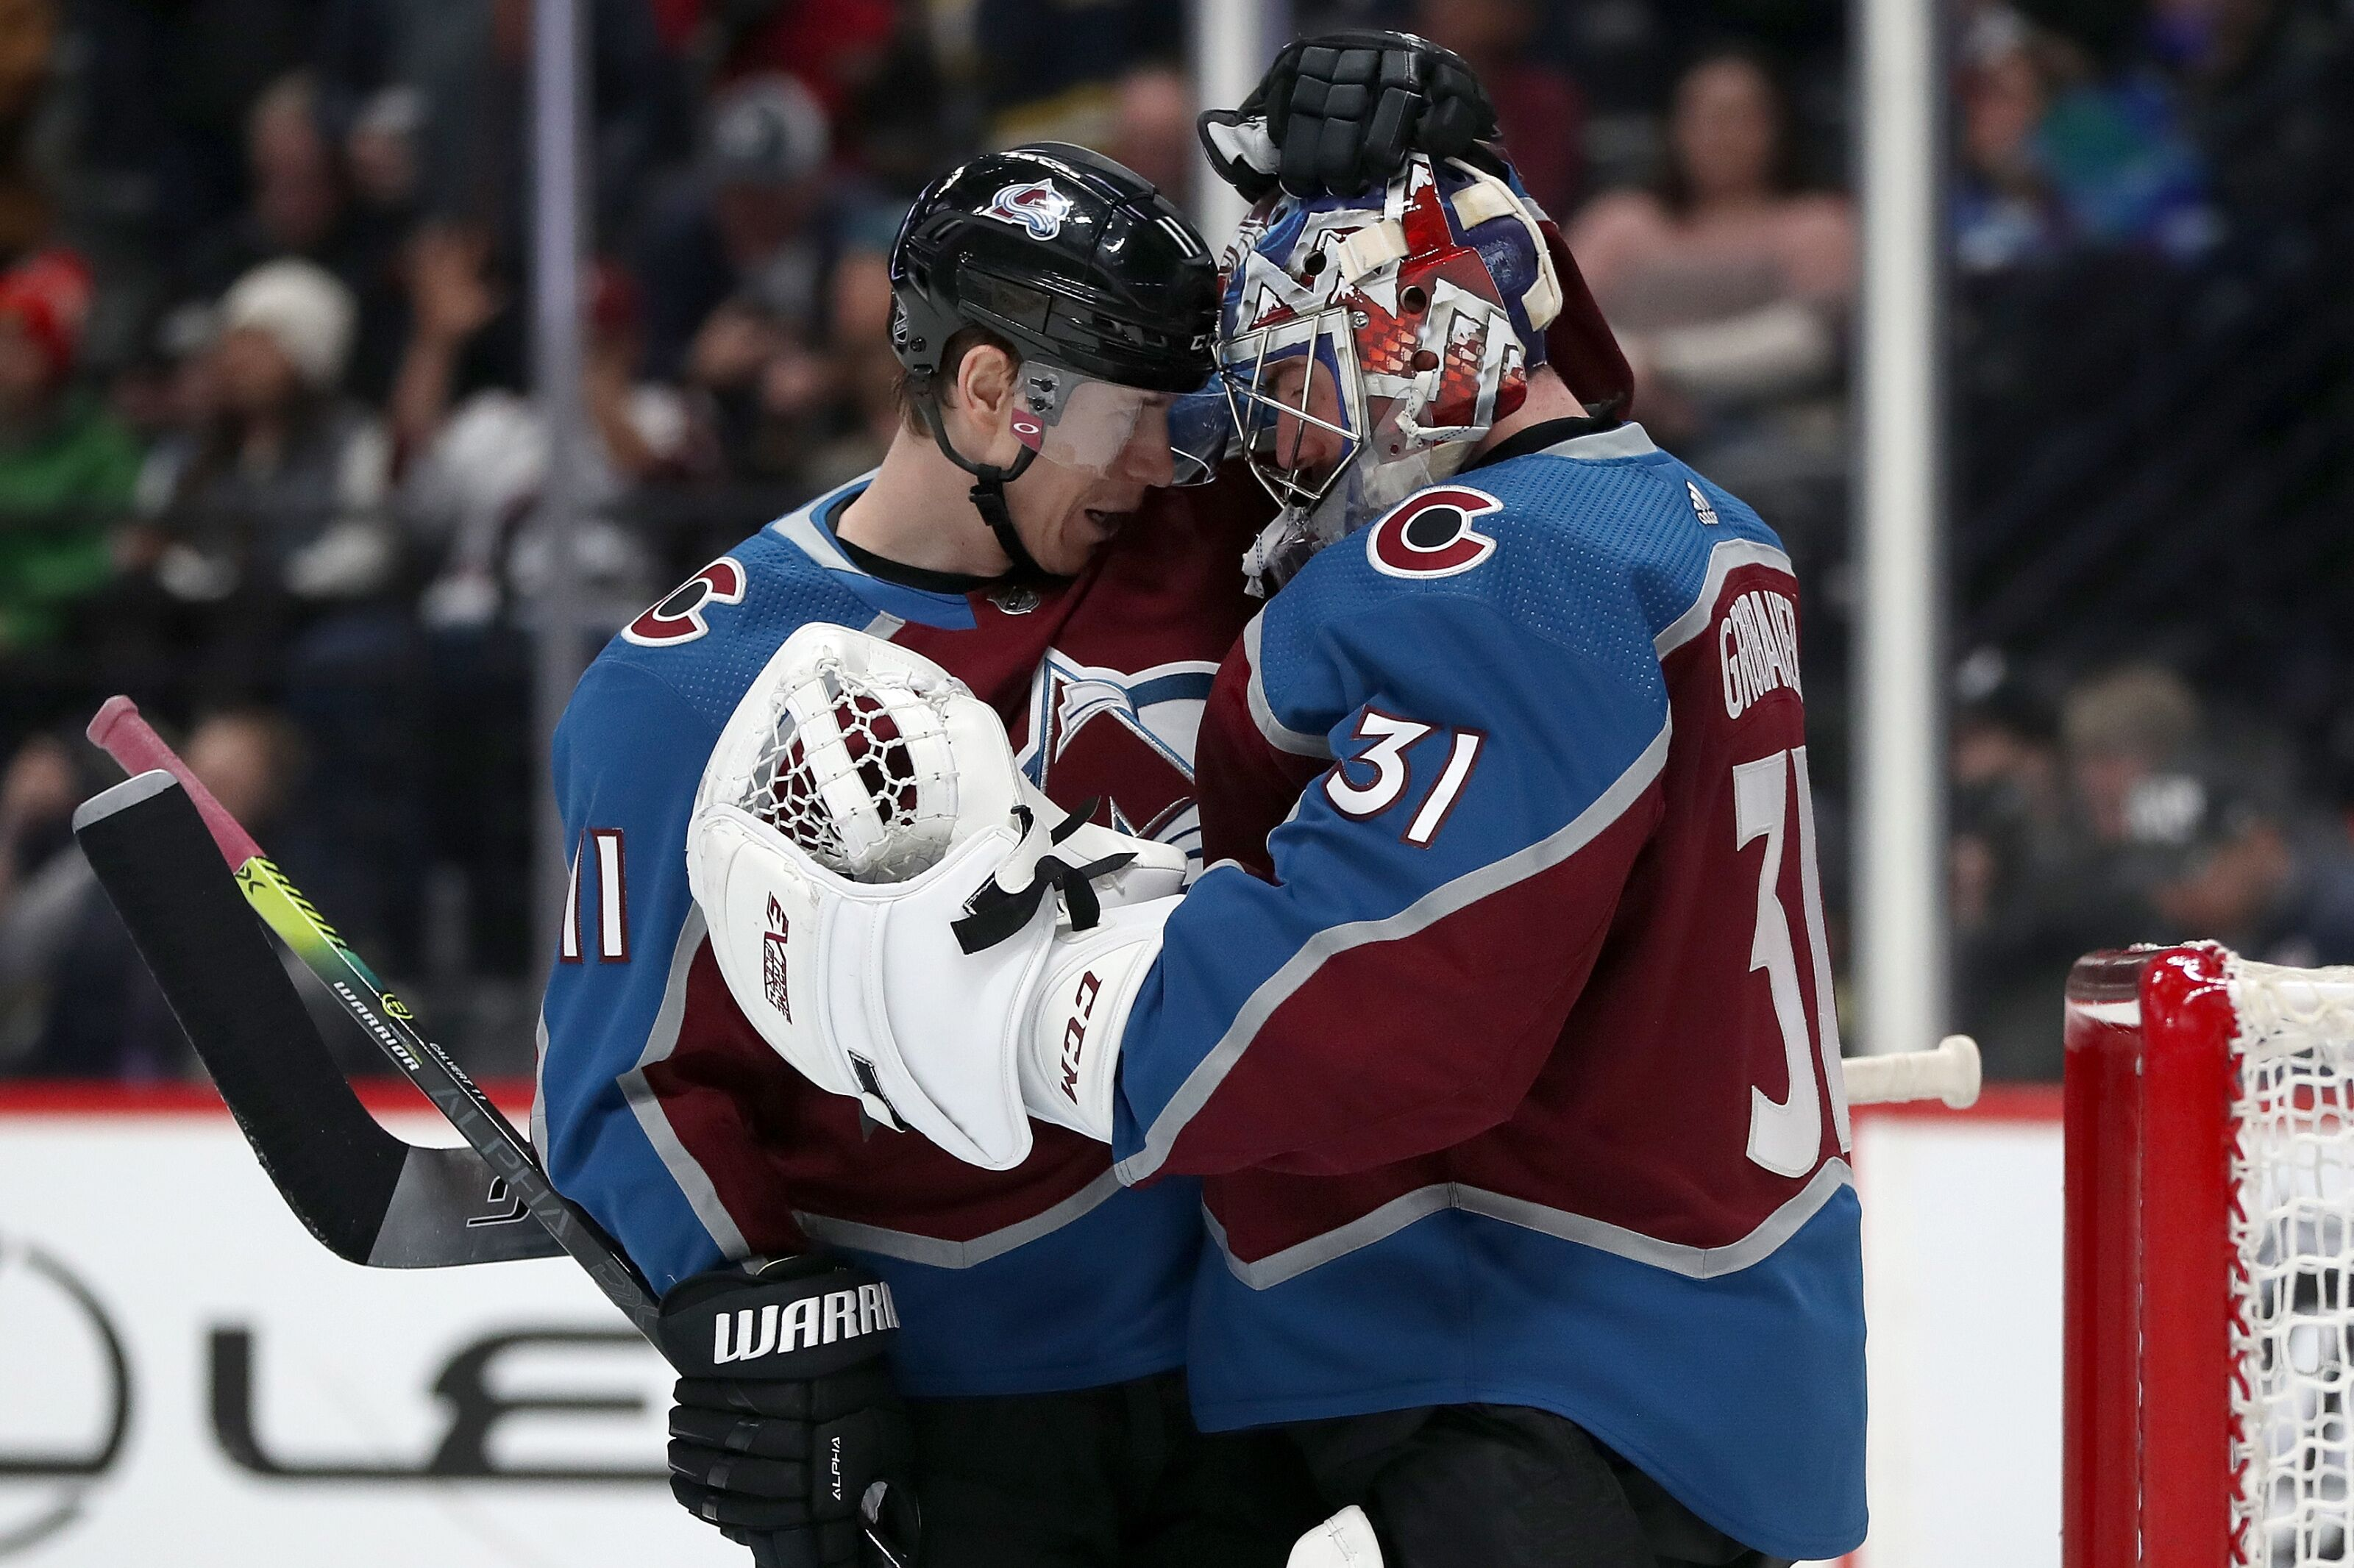 Colorado Avalanche: From Apathy To Cautionary Hope